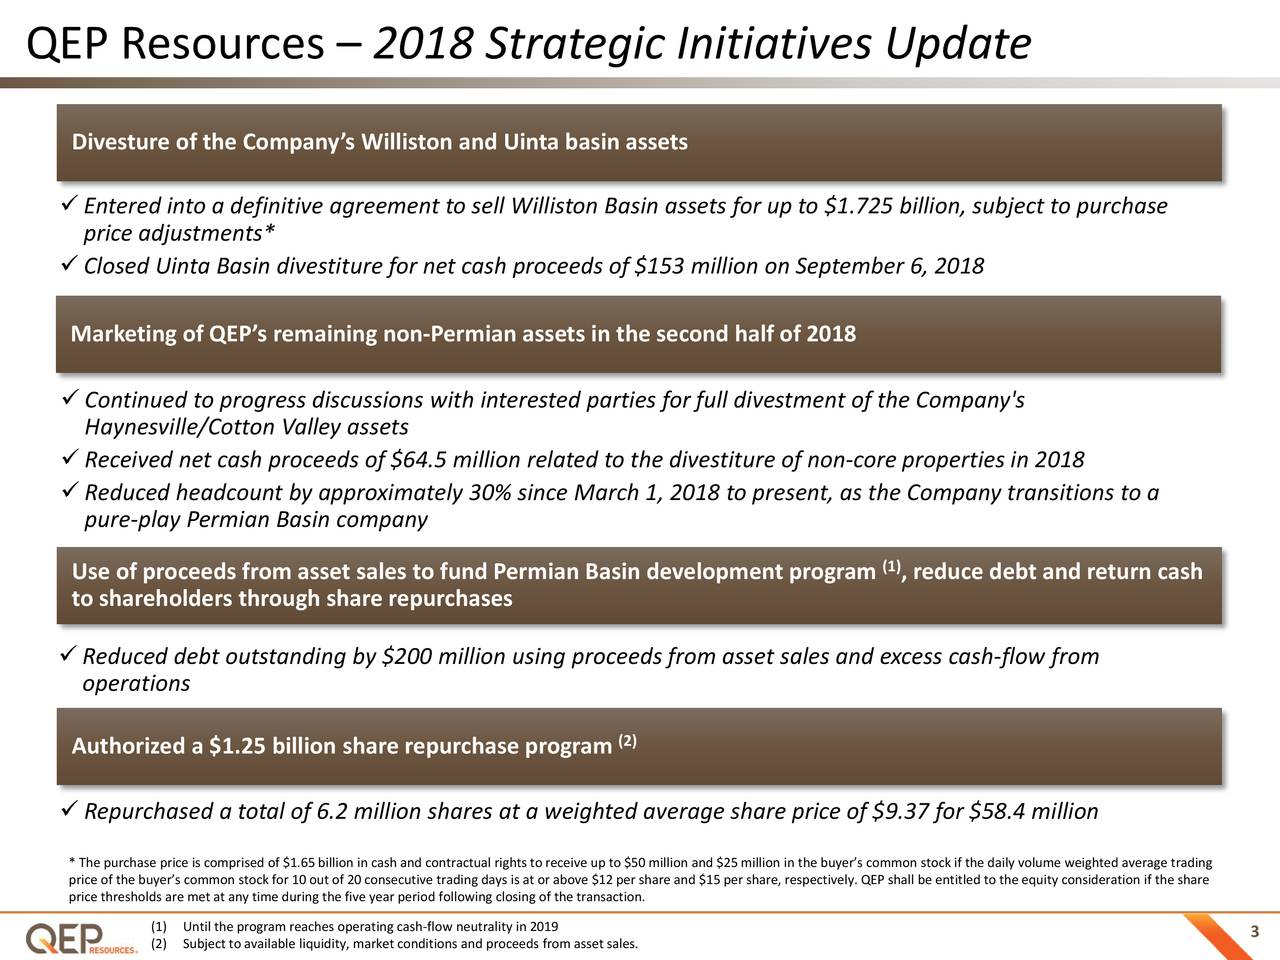 Divesture of the Company's Williston and Uinta basin assets Entered into a definitive agreement to sell Williston Basin assets for up to $1.725 billion, subject to purchase price adjustments* Closed Uinta Basin divestiture for net cash proceeds of $153 million on September 6, 2018 Marketing of QEP's remaining non-Permian assets in the second half of 2018 Continued to progress discussions with interested parties for full divestment of the Company's Haynesville/Cotton Valley assets Received net cash proceeds of $64.5 million related to the divestiture of non-core properties in 2018 Reduced headcount by approximately 30% since March 1, 2018 to present, as the Company transitions to a pure-play Permian Basin company (1) Use of proceeds from asset sales to fund Permian Basin development program , reduce debt and return cash to shareholders through share repurchases Reduced debt outstanding by $200 million using proceeds from asset sales and excess cash- flow from operations Authorized a $1.25 billion share repurchase program (2) Repurchased a total of 6.2 million shares at a weighted average share price of $9.37 for $58.4 million price of the buyer's common stock for 10 out of 20 consecutive trading days is at or above $12 per share and $15 per share, respectively. QEP shall be entitled to the equity consideration if the share price thresholds are met at any time during the five year period following closing of the transaction. (2) Subject to available liquidity, market conditions and proceeds from asset sales. 3